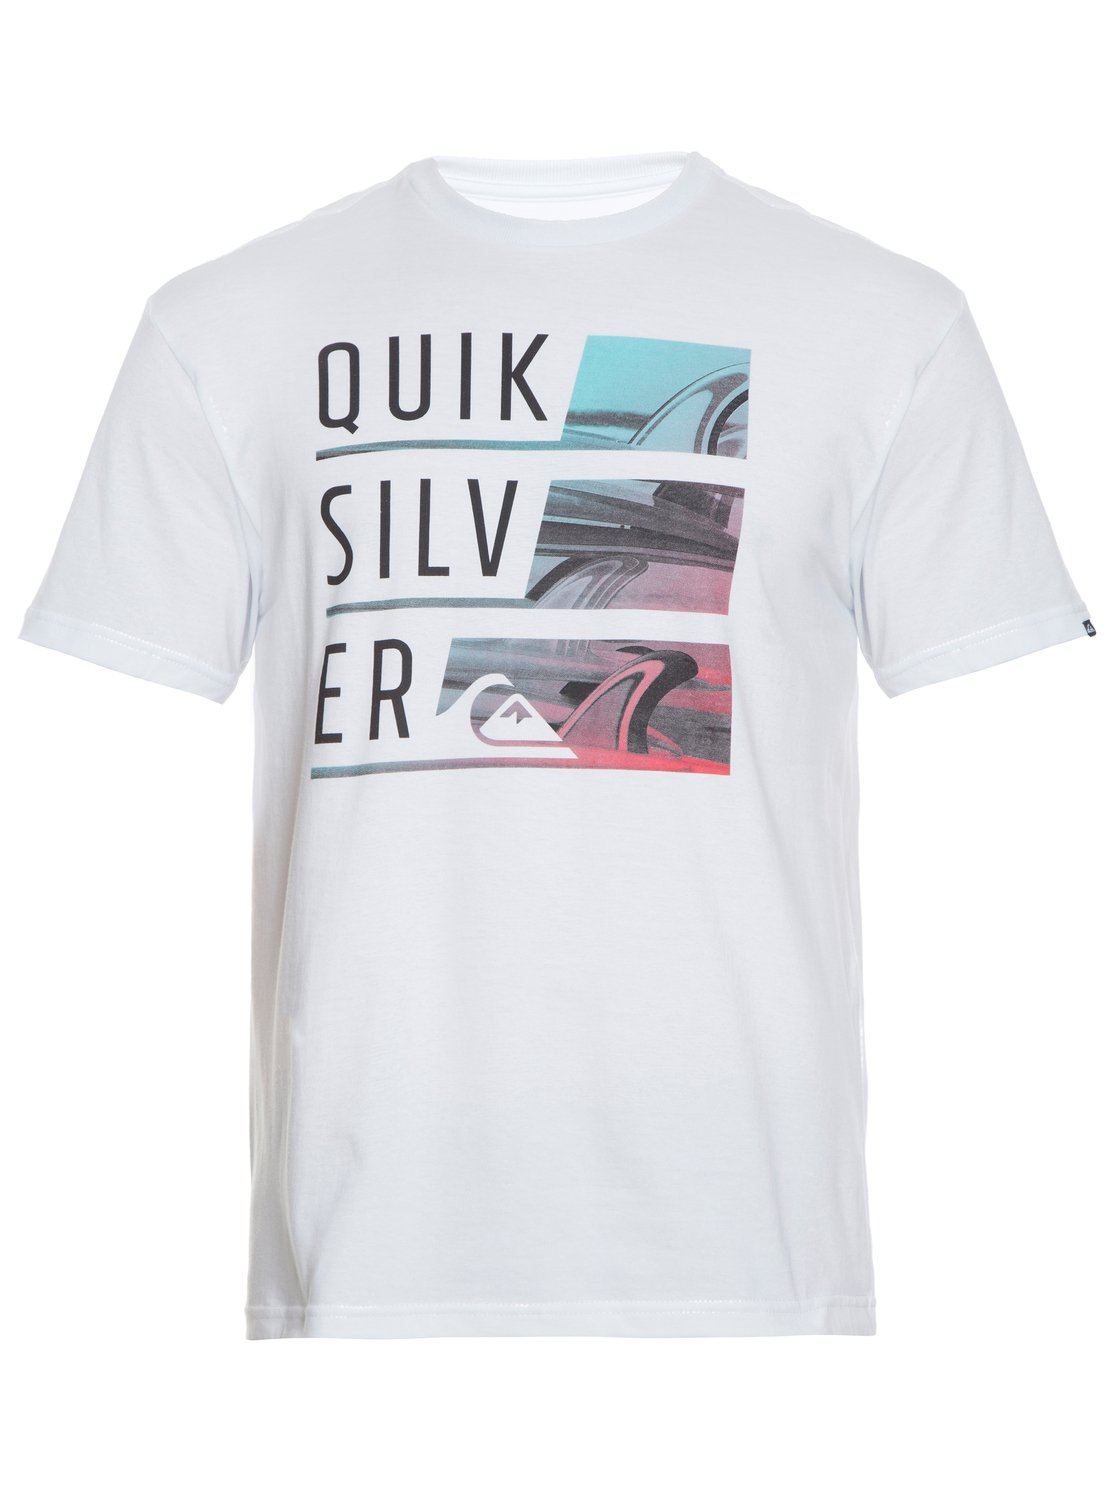 0 Camiseta básica masculina Word Up BR61113823 Quiksilver c01391486ce